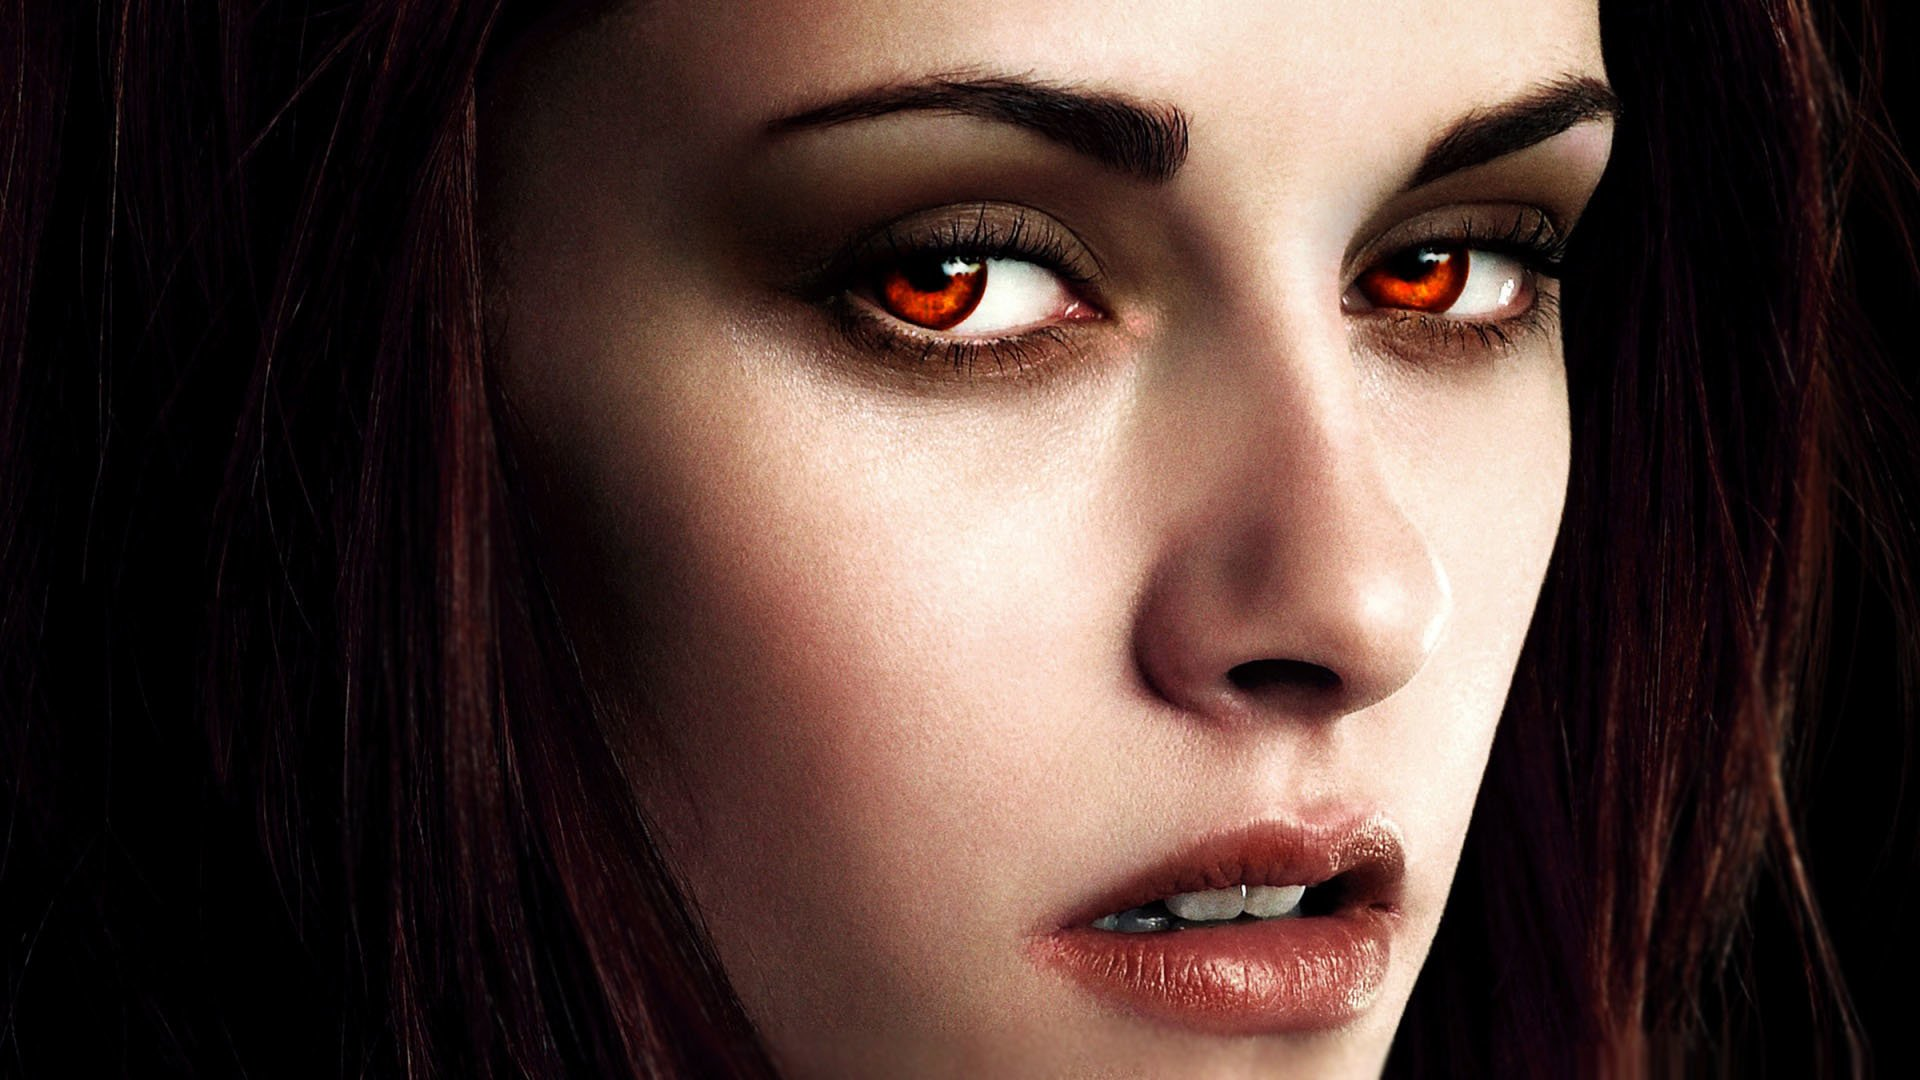 Movie - The Twilight Saga: Breaking Dawn - Part 2  Twilight Kristen Stewart Bella Swan Wallpaper